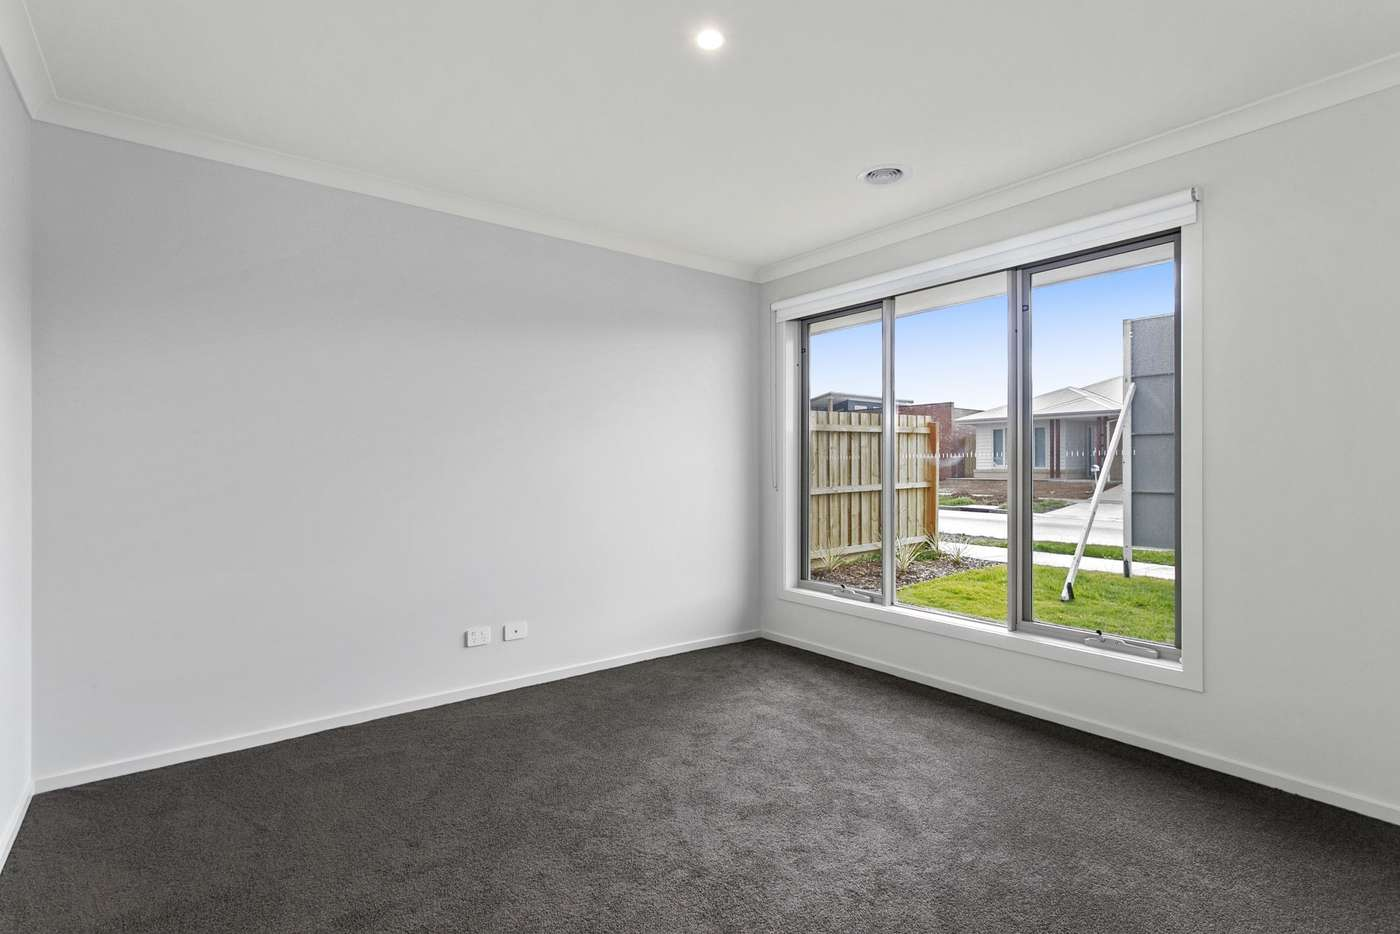 Fifth view of Homely house listing, 36 Witchetty Drive, Ocean Grove VIC 3226